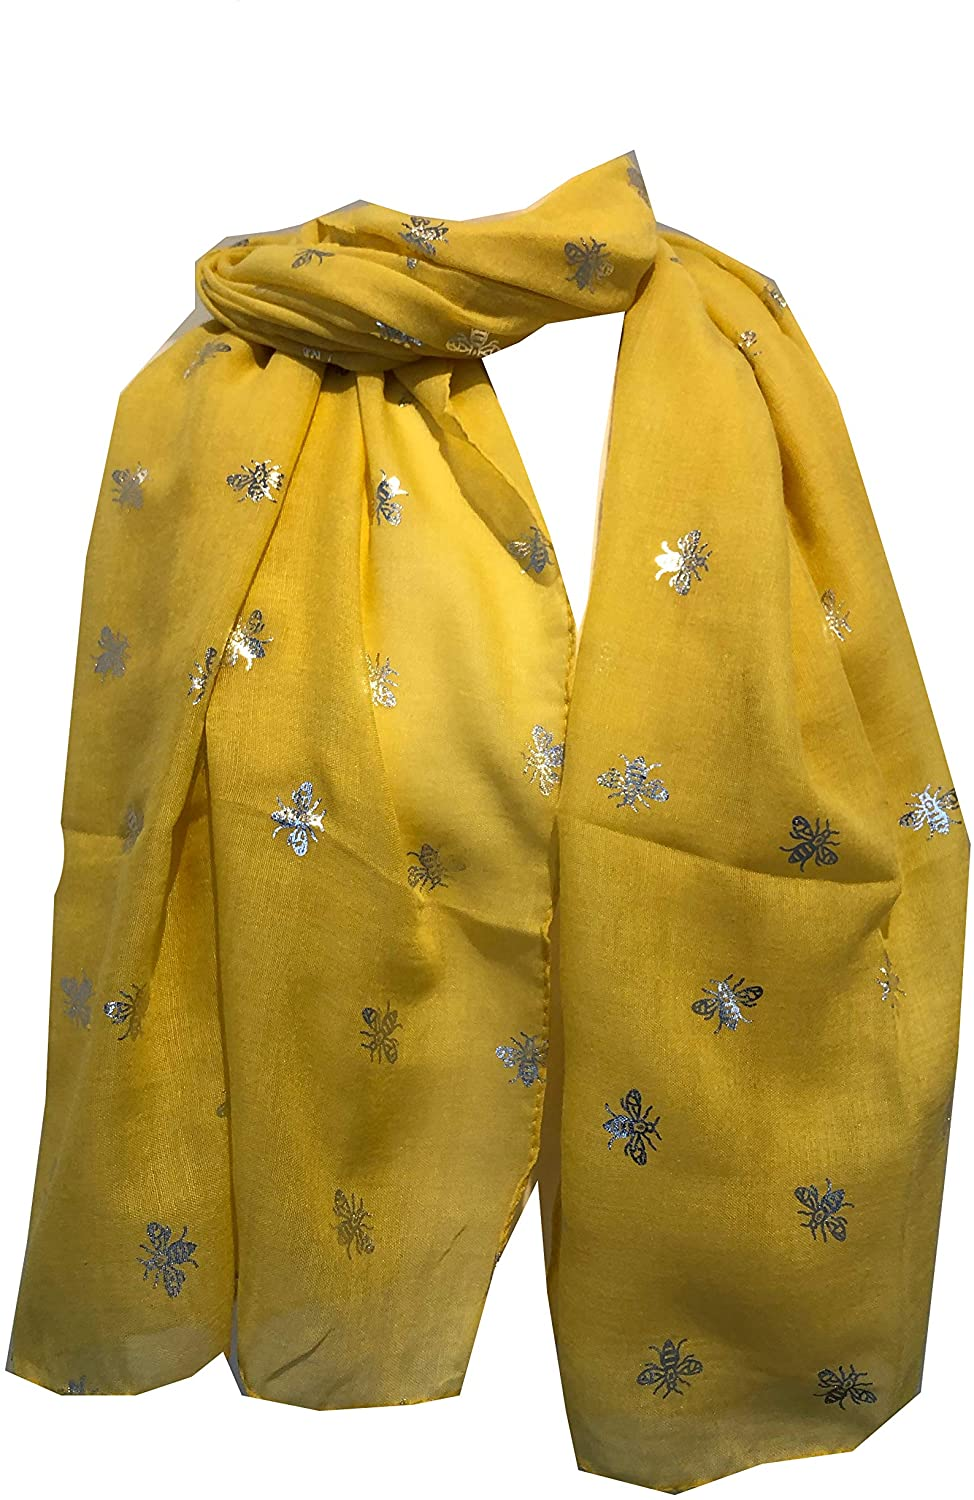 Pamper Yourself Now Yellow with Silver Bumble Bees Long Scarf. Great Present/Gift for bee Lovers.